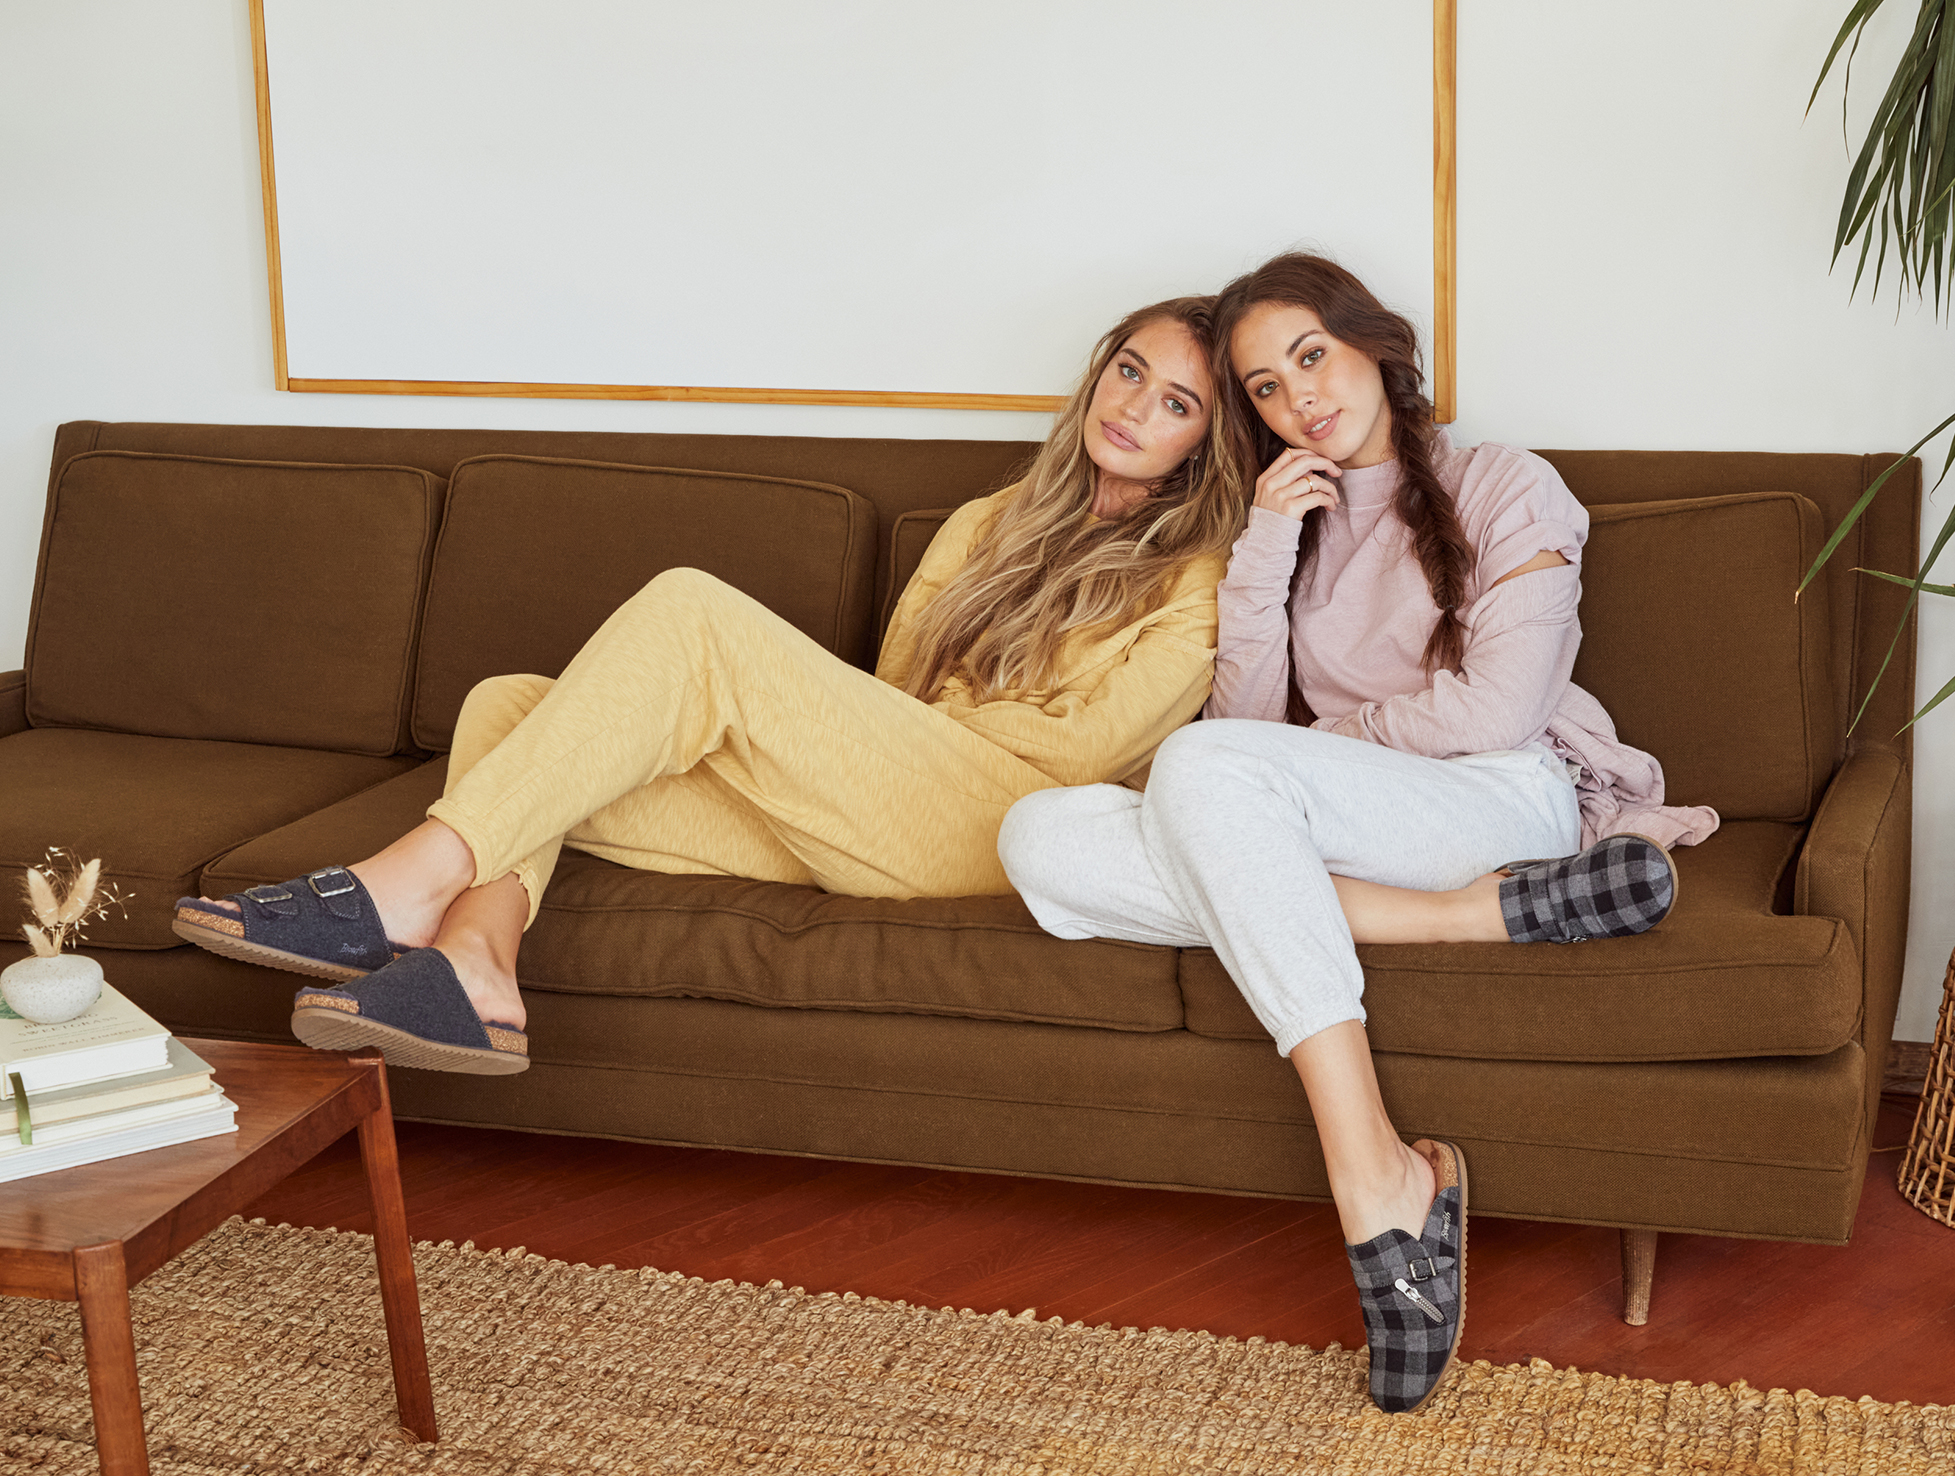 https://blowfishshoes.com/wp-content/uploads/2021/08/FW21-Womens-Collection.jpg